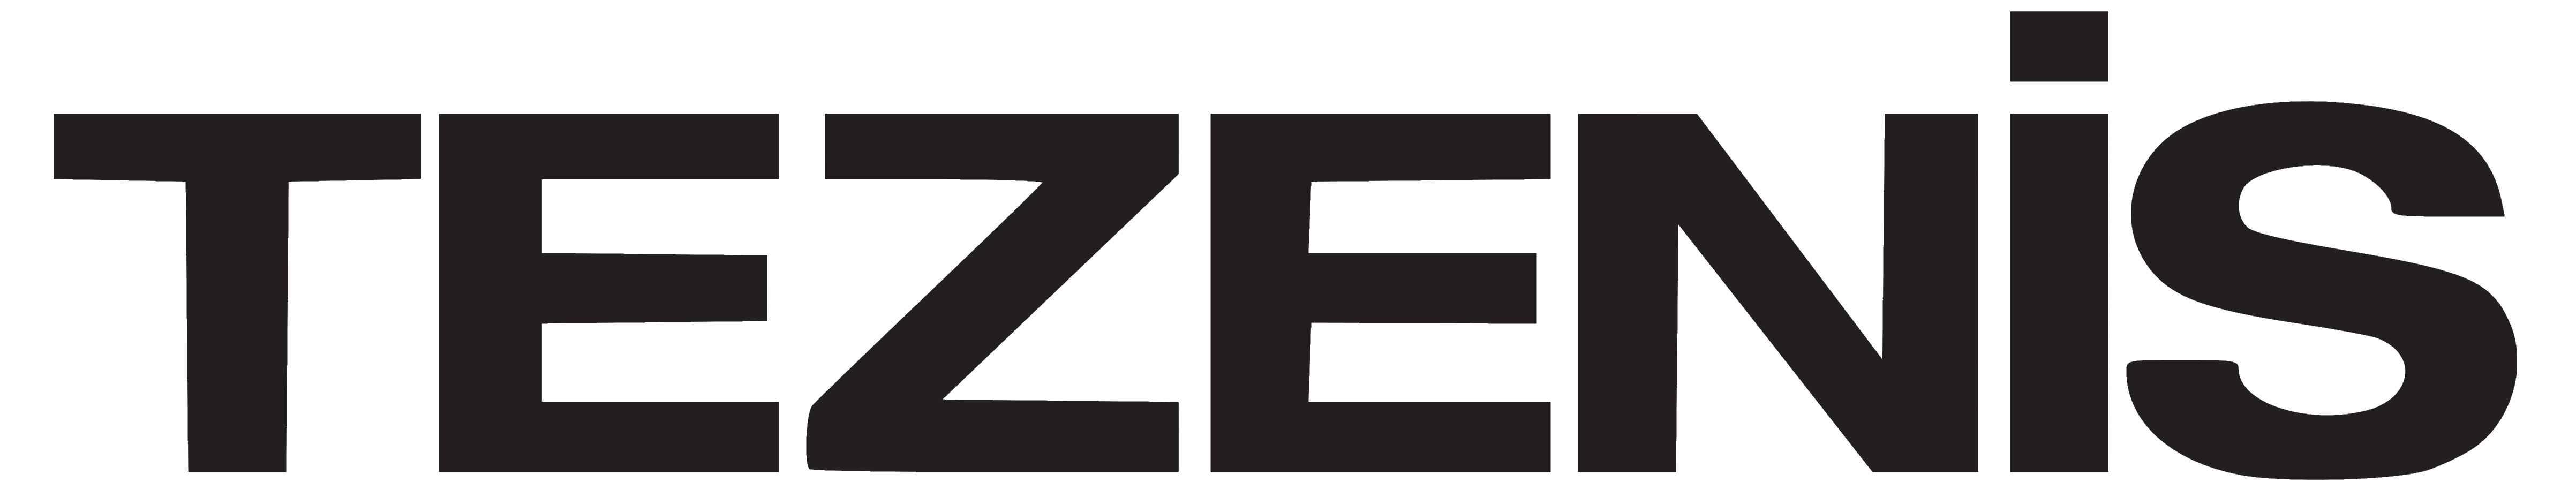 http://itscosmo.it/wp-content/uploads/2021/06/Tezenis_logo_logotype.png